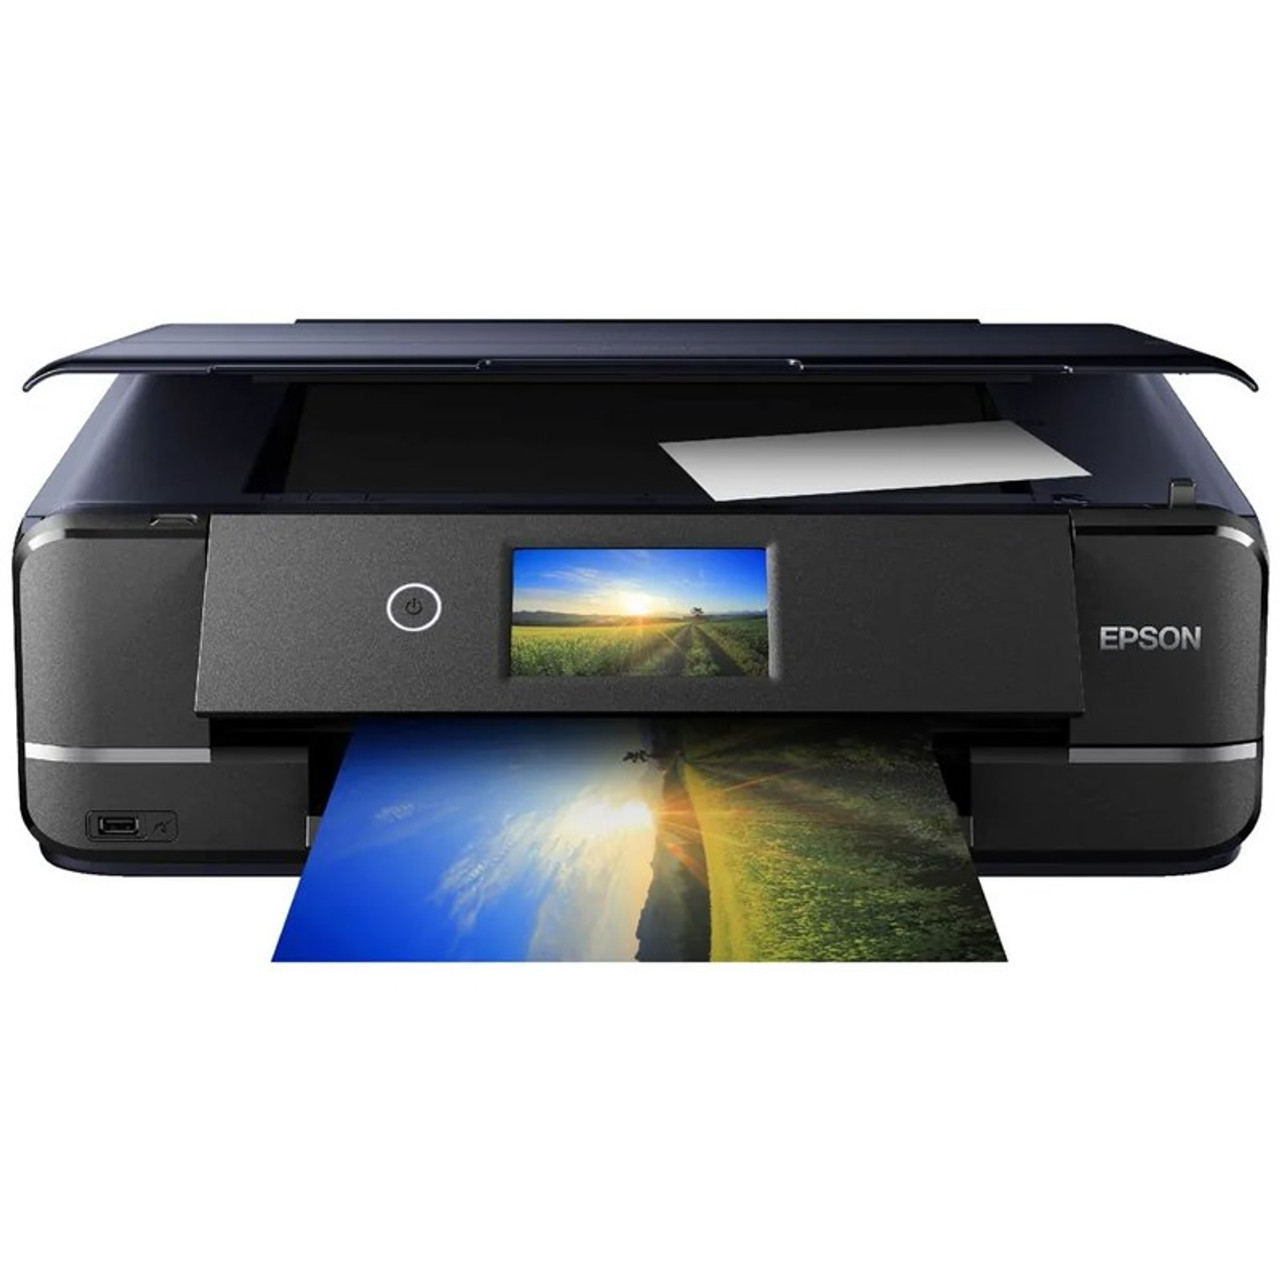 Image for Epson Expression Photo XP-970 A3 Wireless Colour Multifunction Inkjet Printer CX Computer Superstore